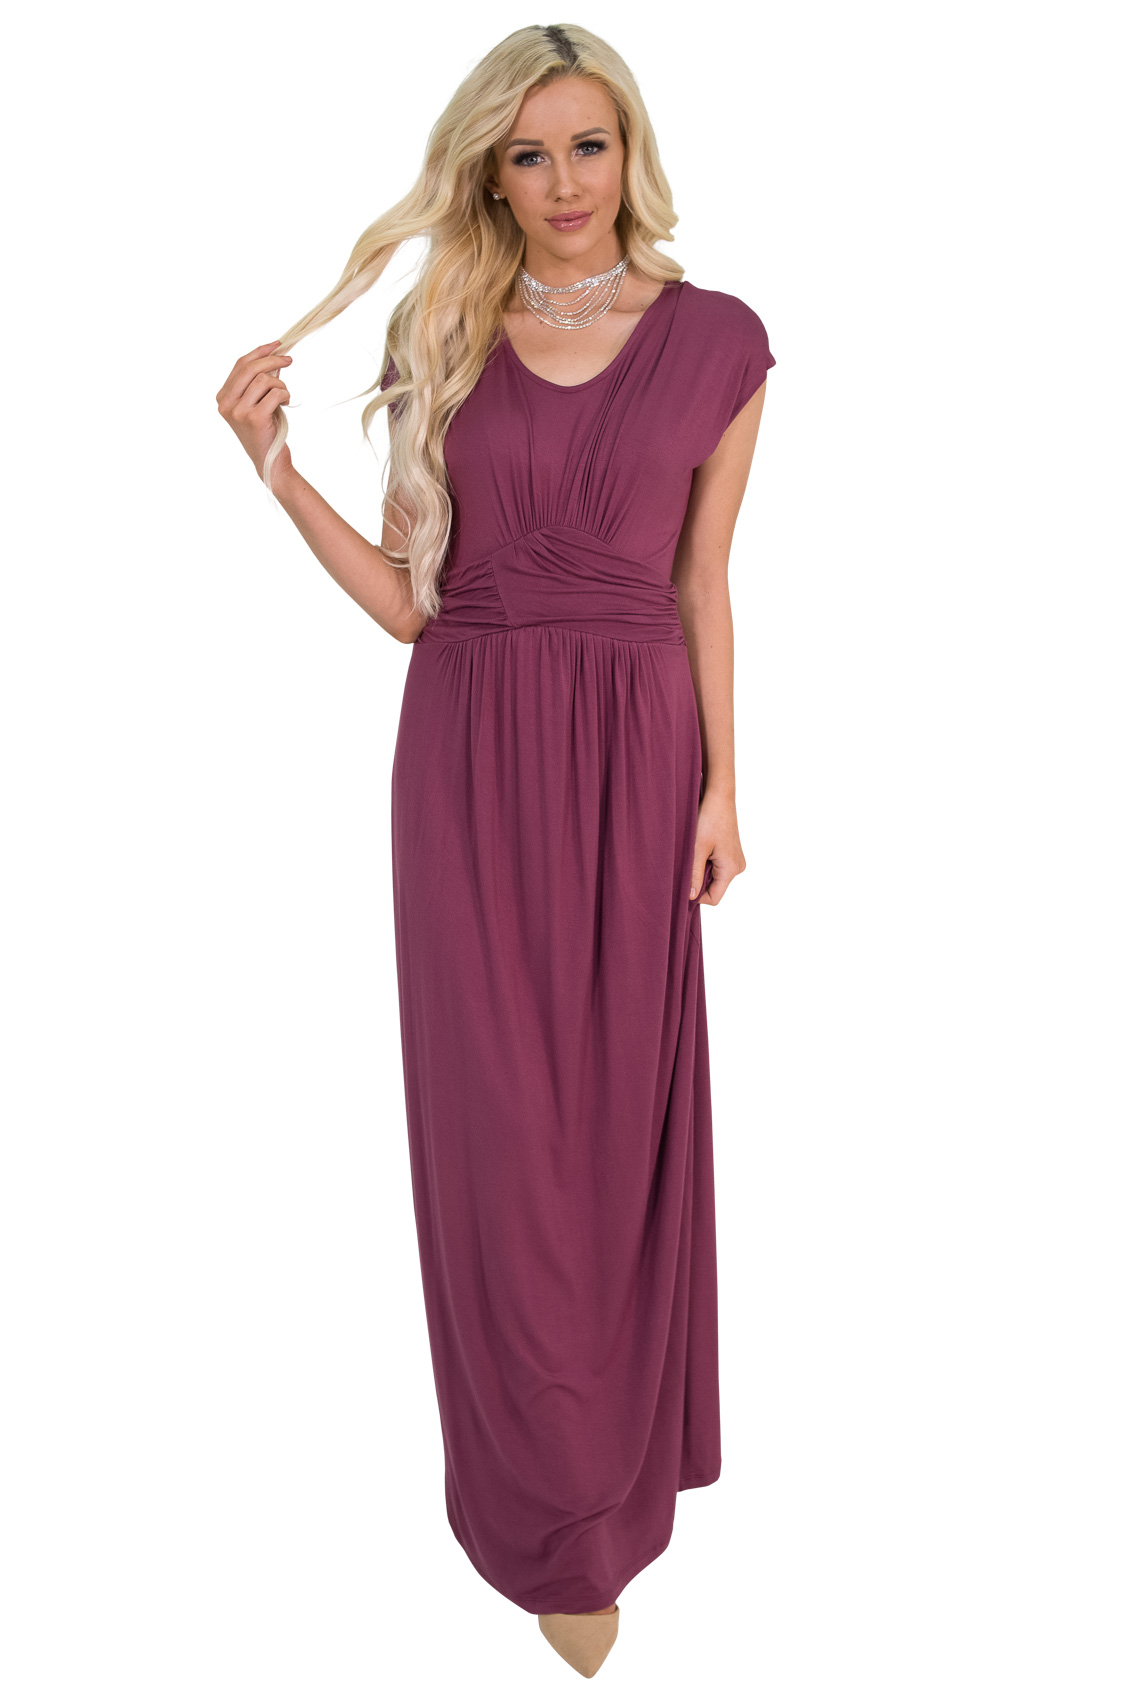 ff7169dca9f Athena Modest Maxi Dress or Bridesmaid Dress in Dark Rose   Maroon   RESTOCKED